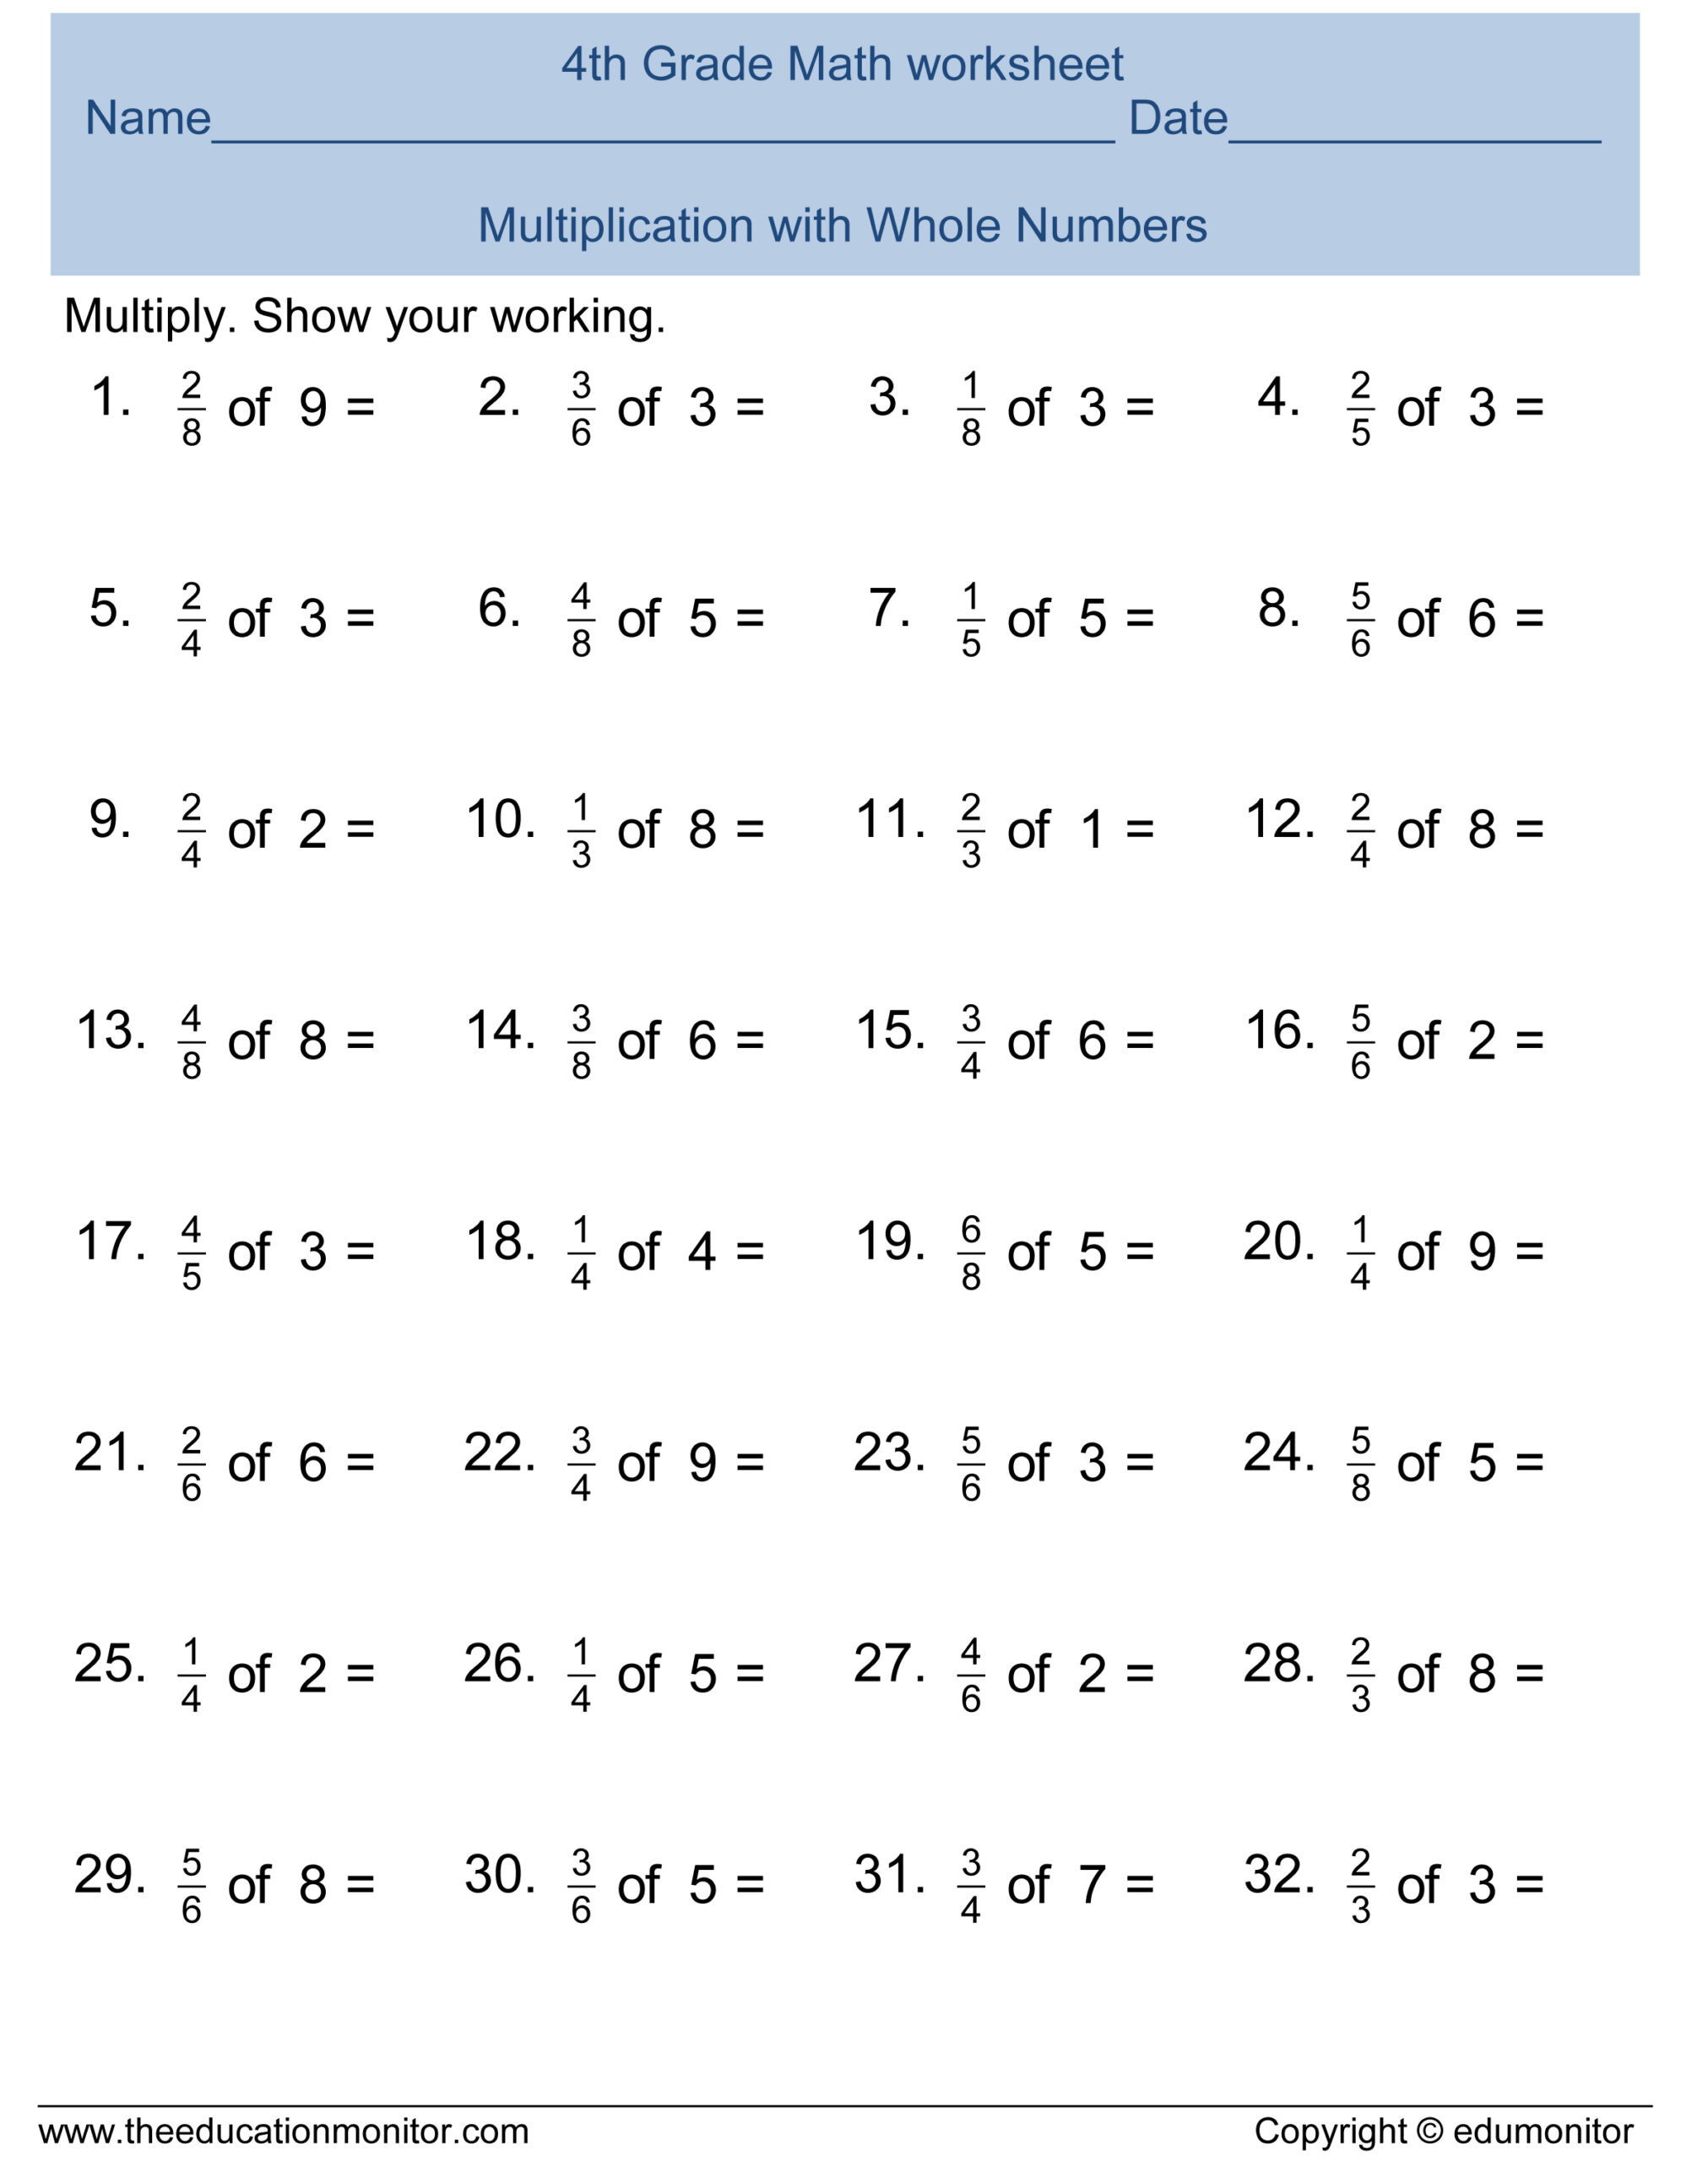 Abeka 5th Grade Math Worksheets Free 4th Grade Fractions Math Worksheets and Printables